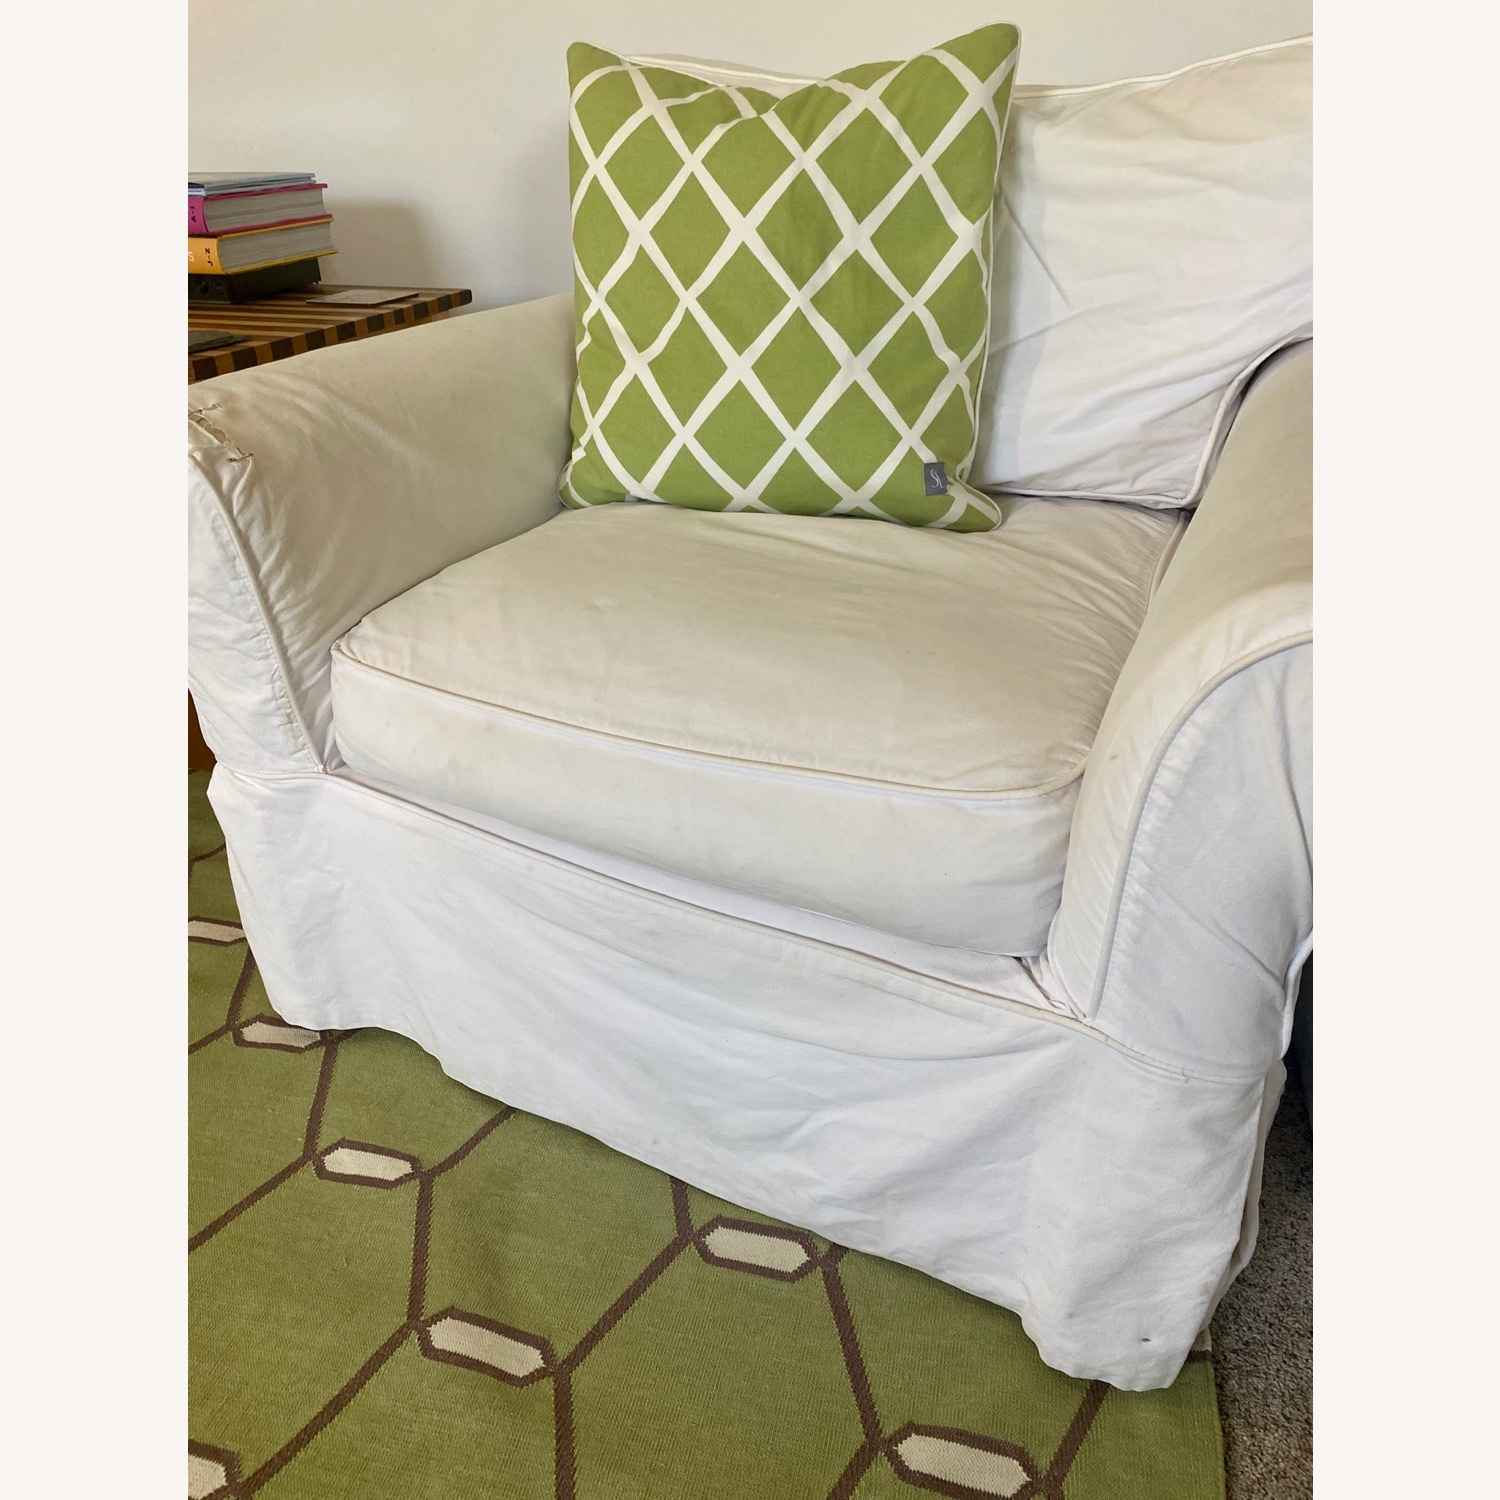 2 Crate & Barrel Chairs - image-1